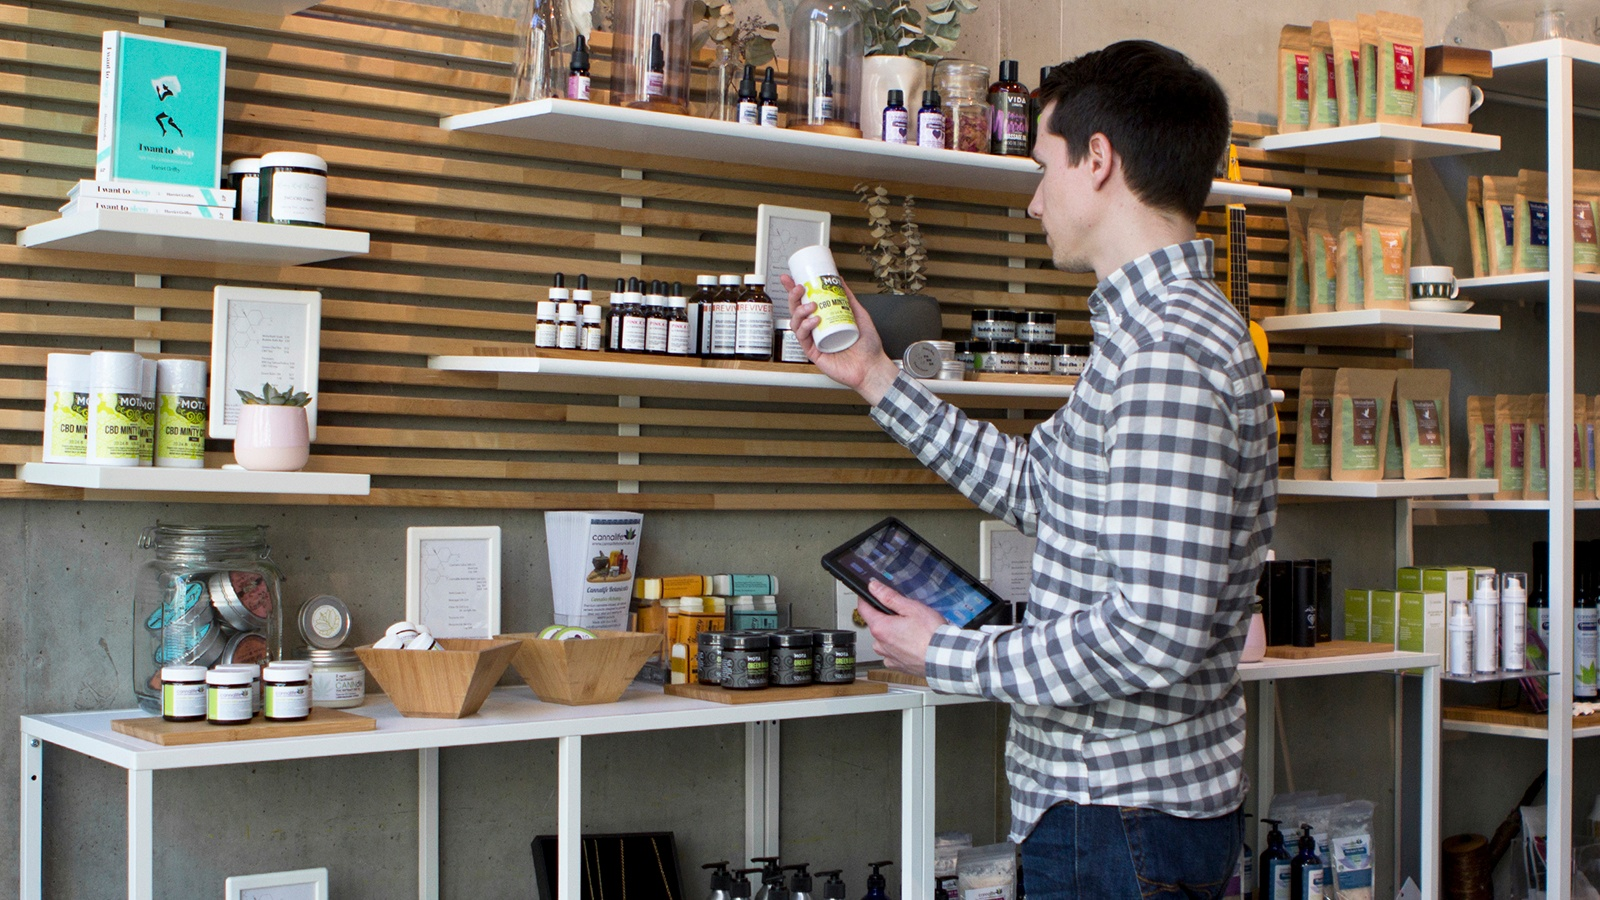 4-Features-Your-Cannabis-Inventory-Management-Tool-Should-Include.jpg